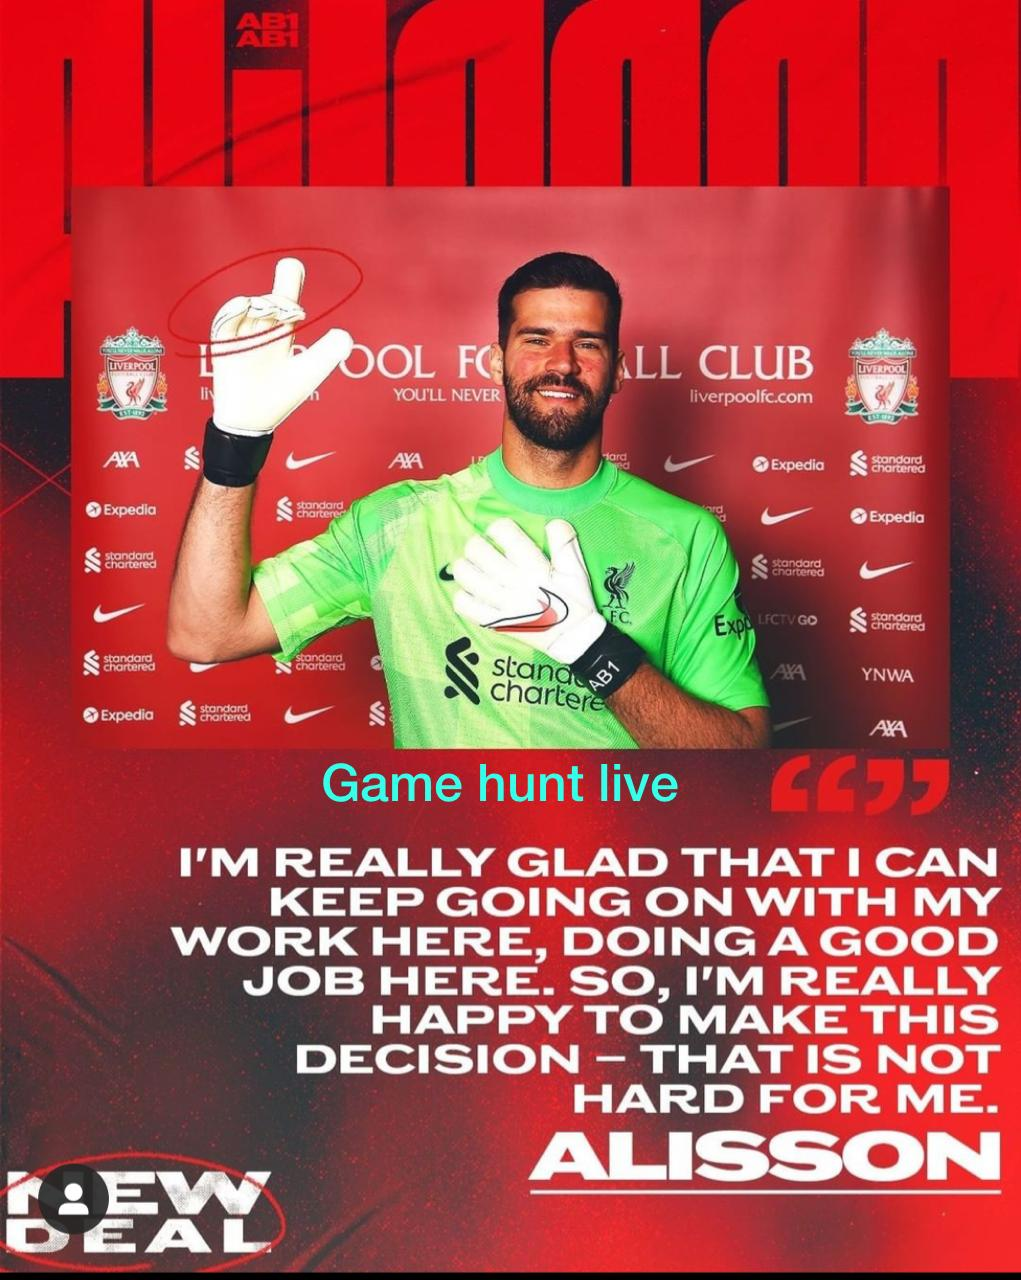 Alisson Becker Signed A New Team